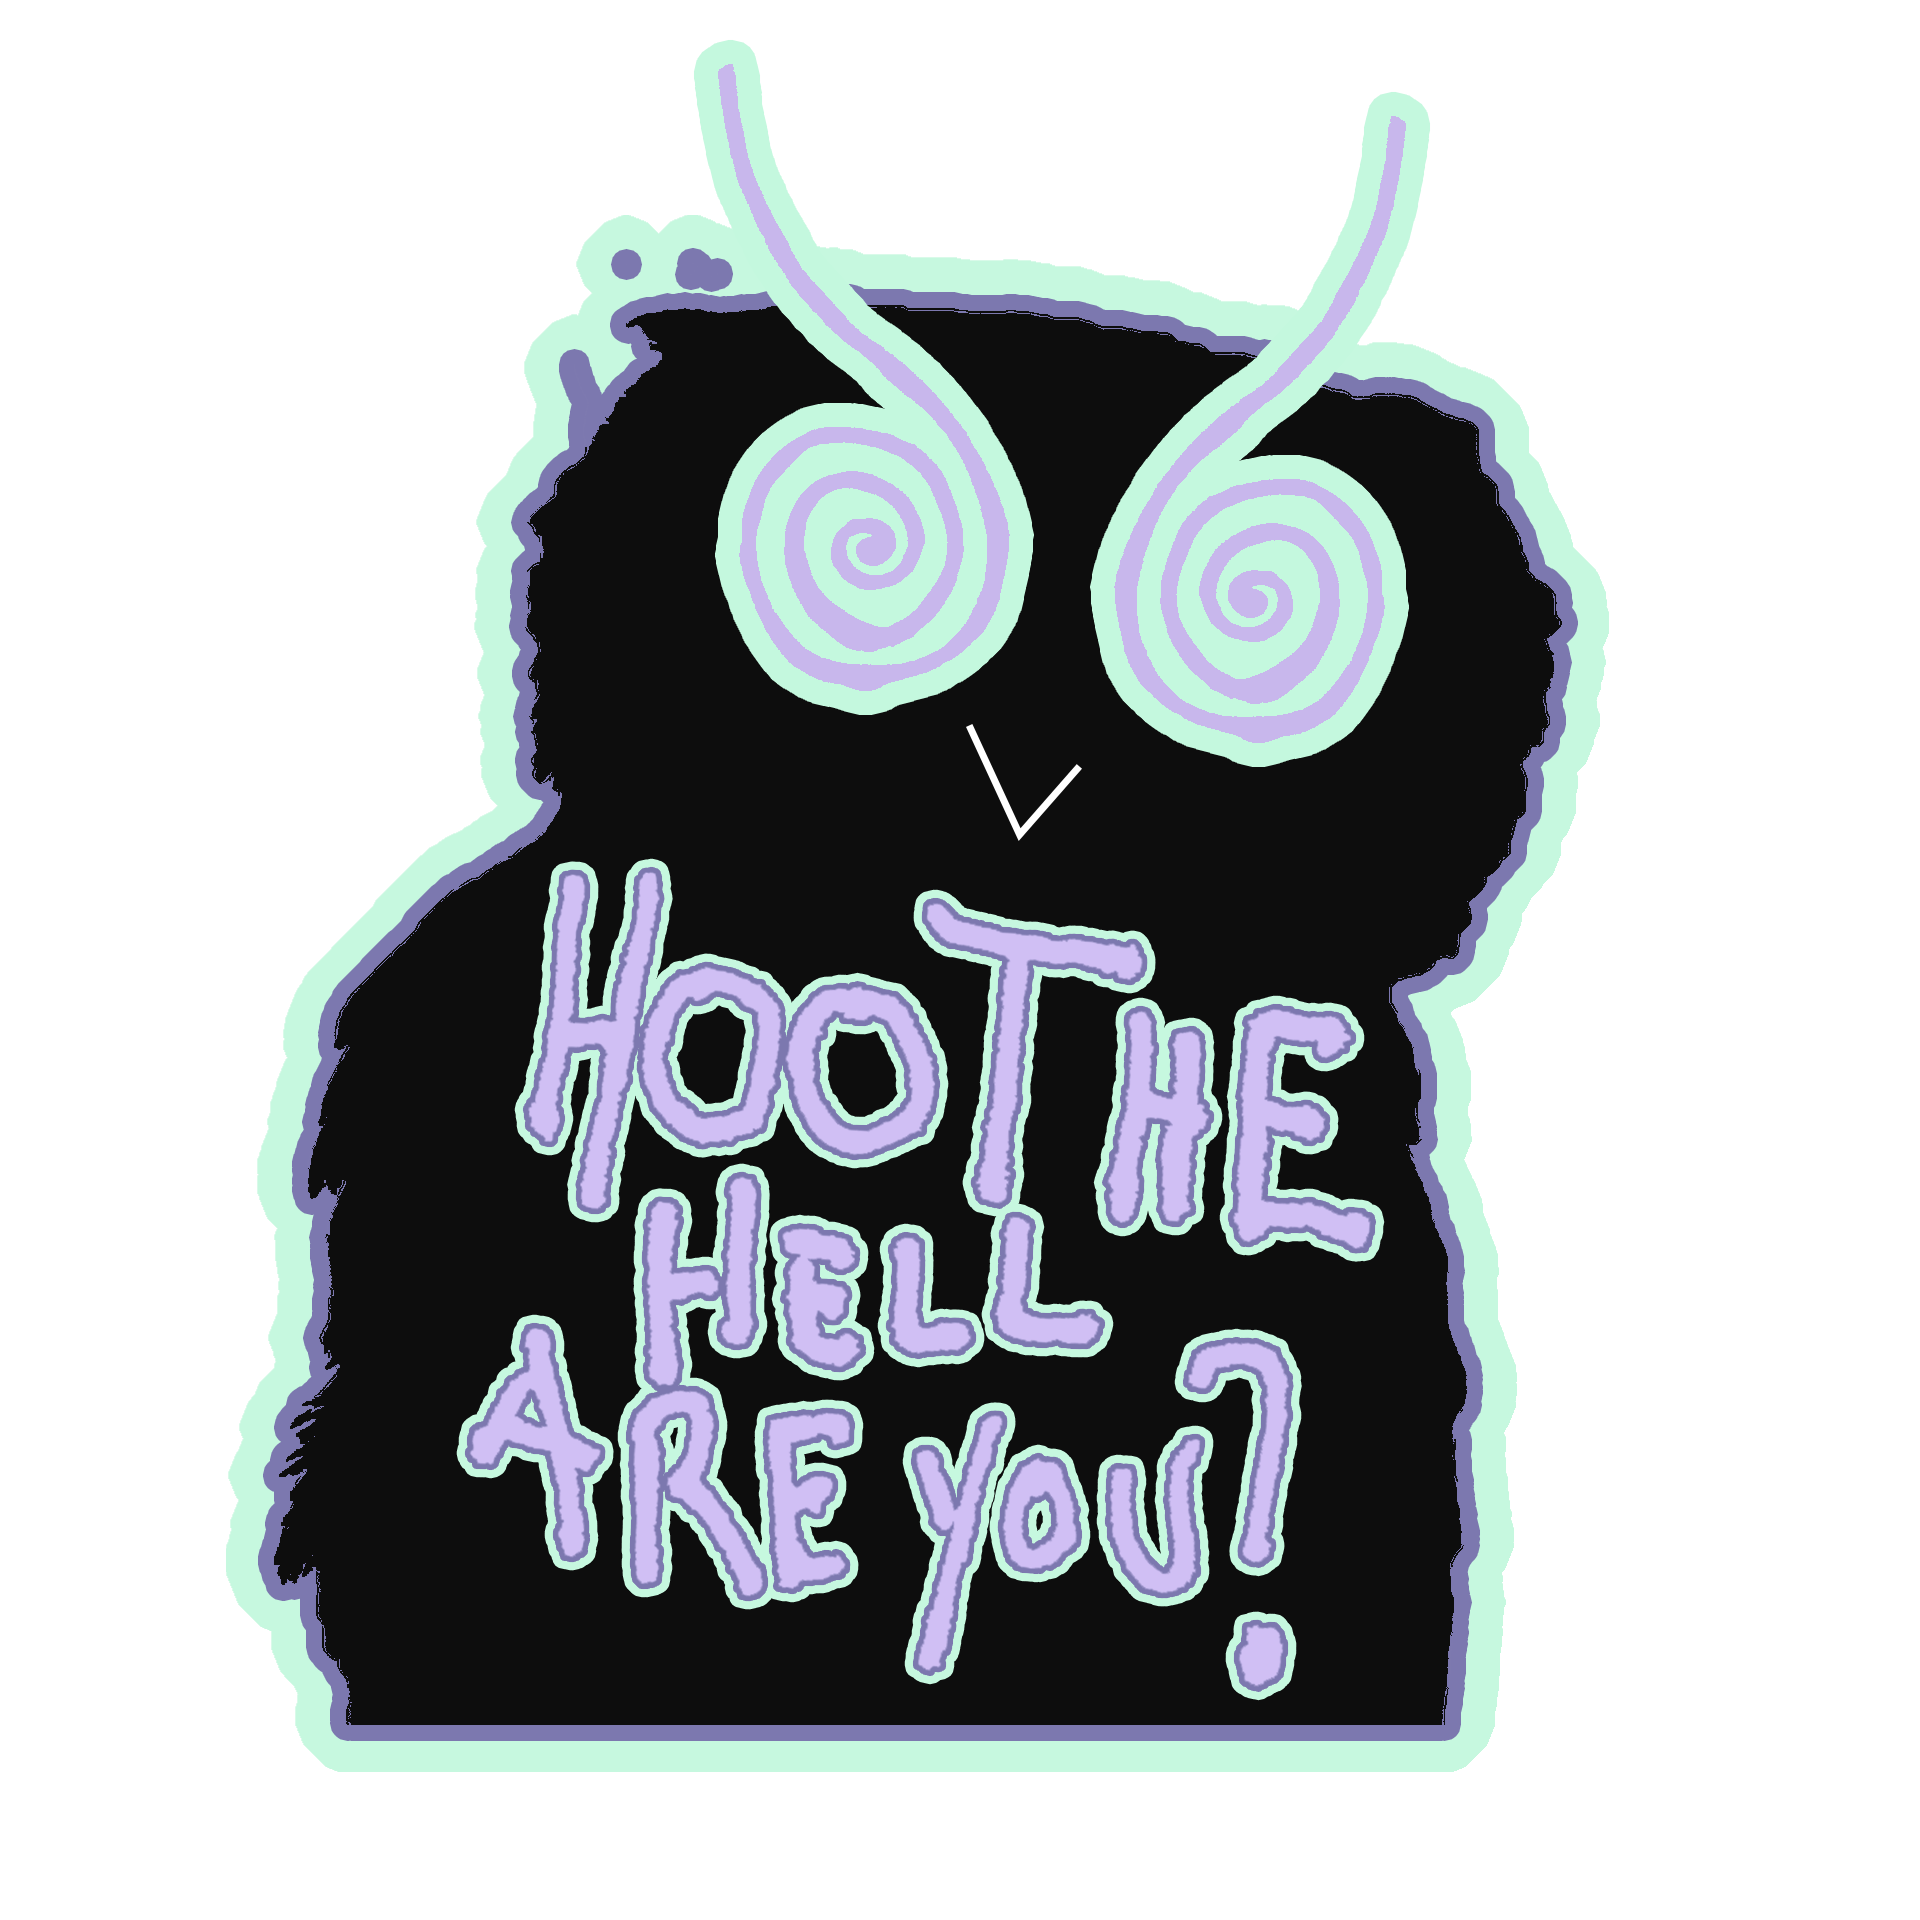 hoot the hell pin.png